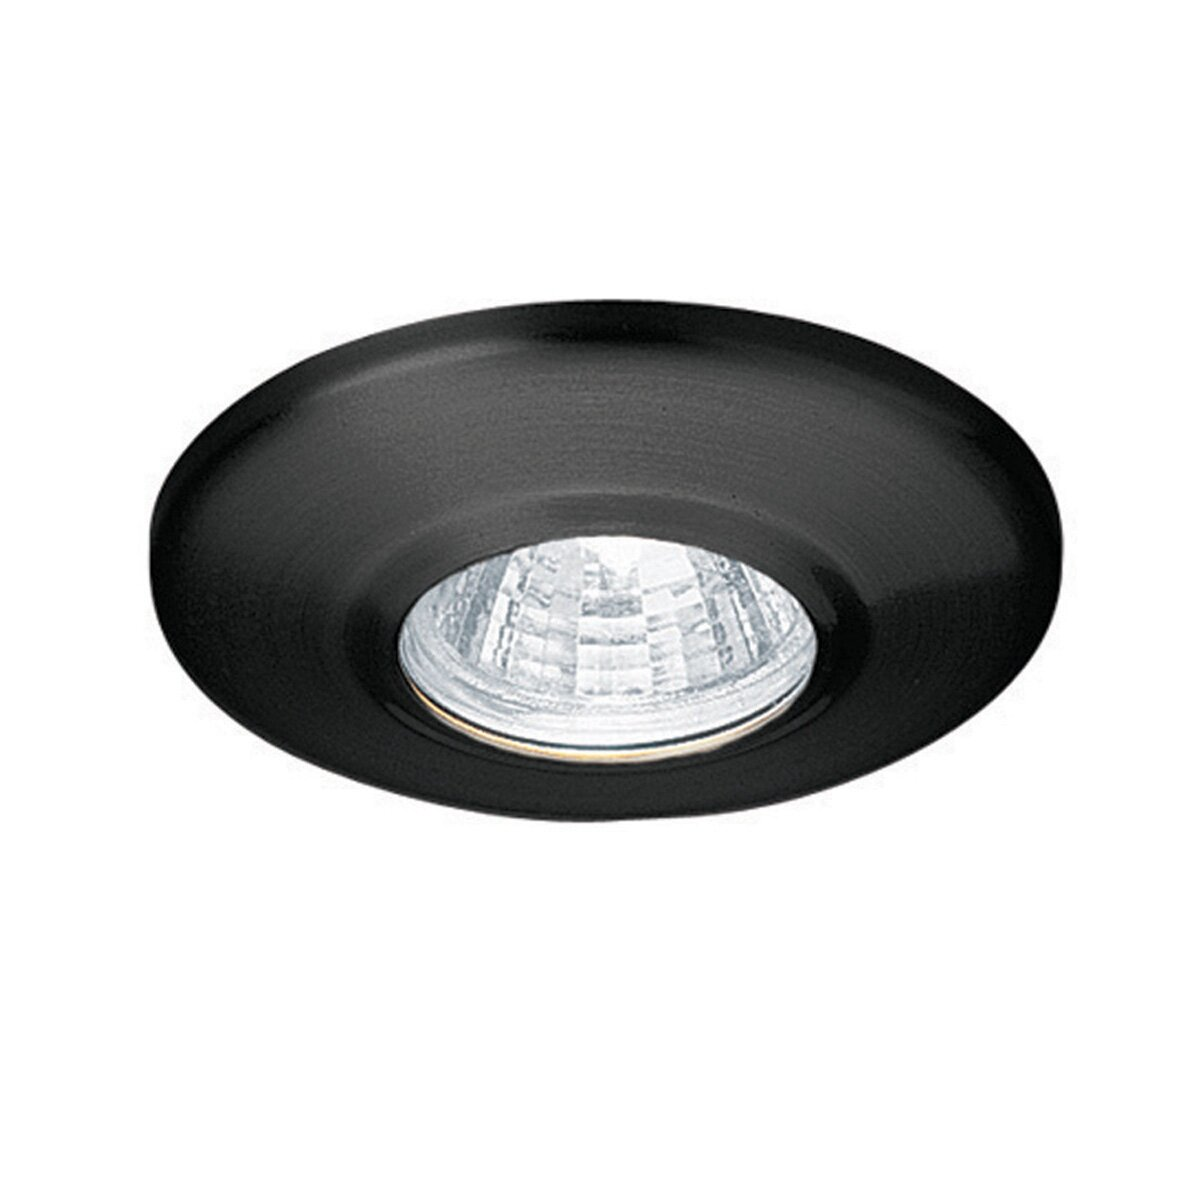 Wac Lighting Low Voltage Adjustable Miniature 2 38